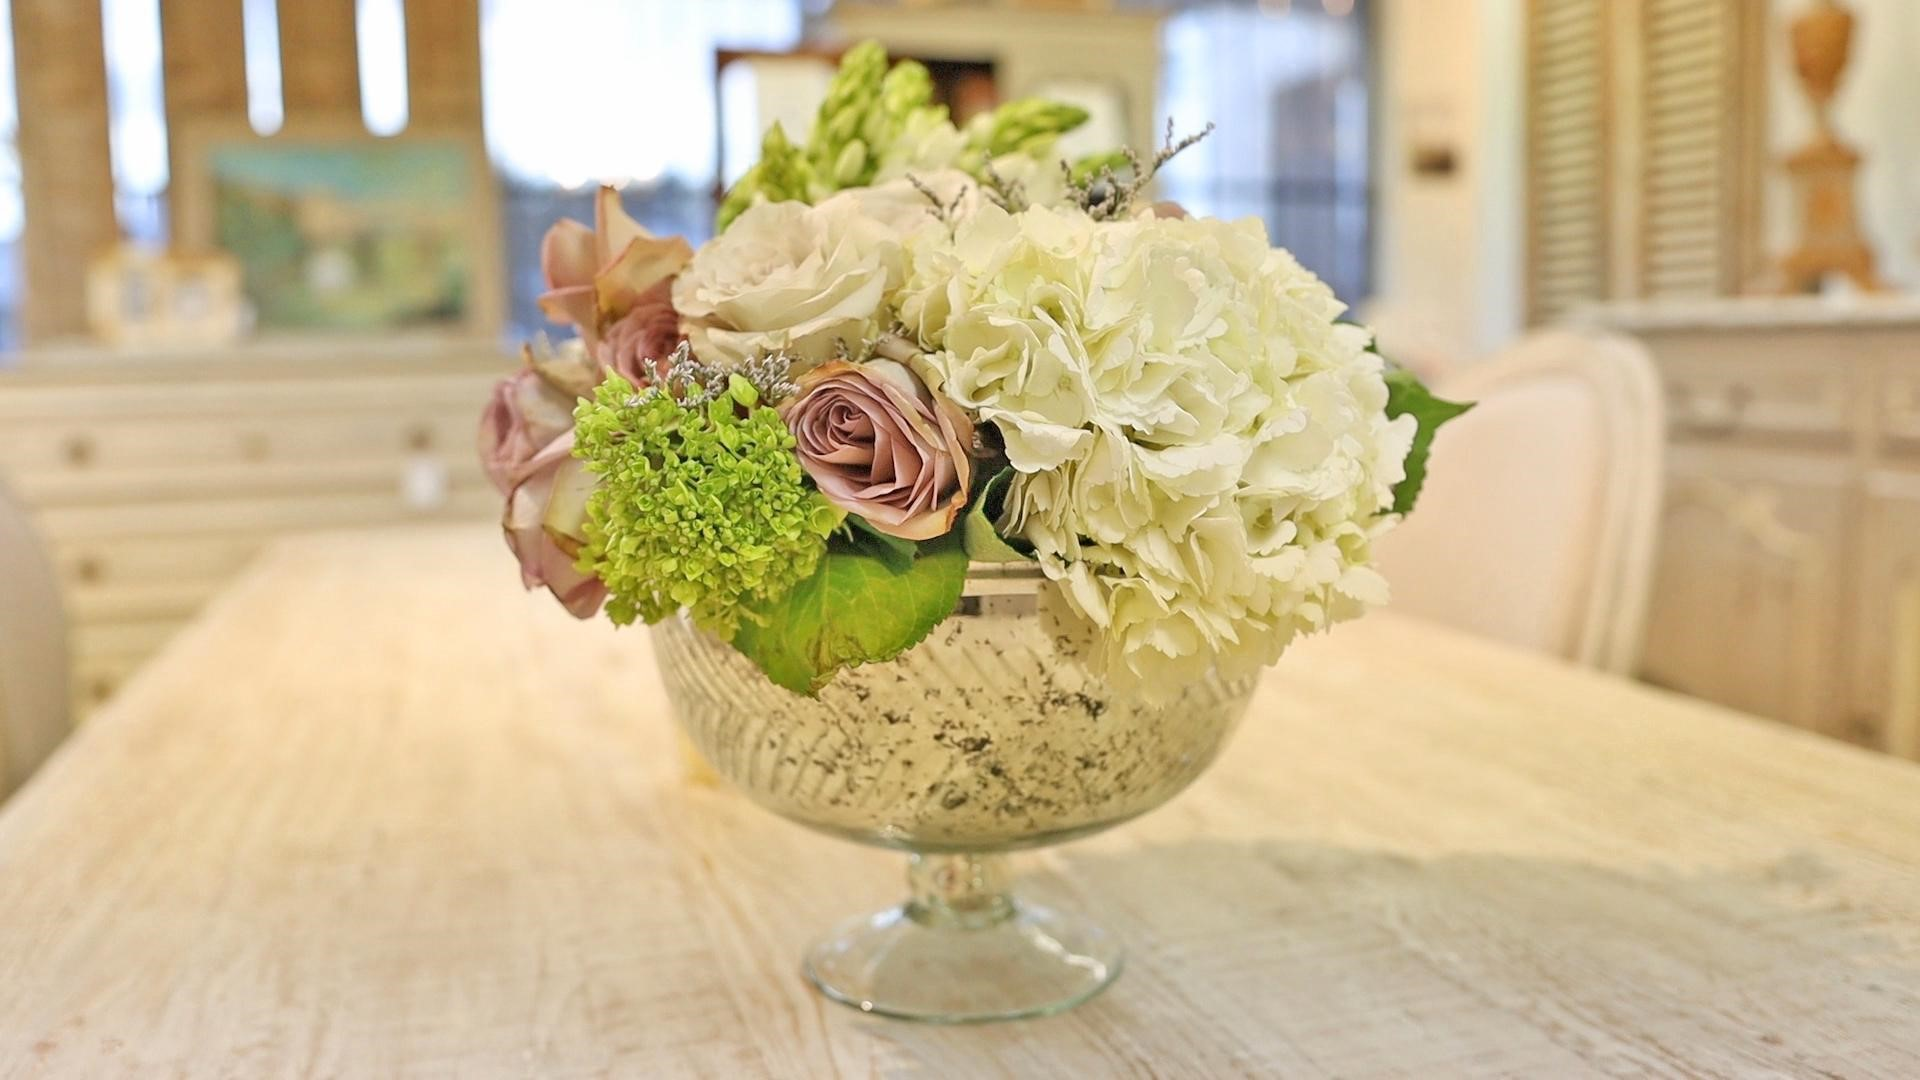 Floral bowl arrangement in silver rustic bowl with white hydrangeas, pink roses, and green hydrangeas on farmhouse style table